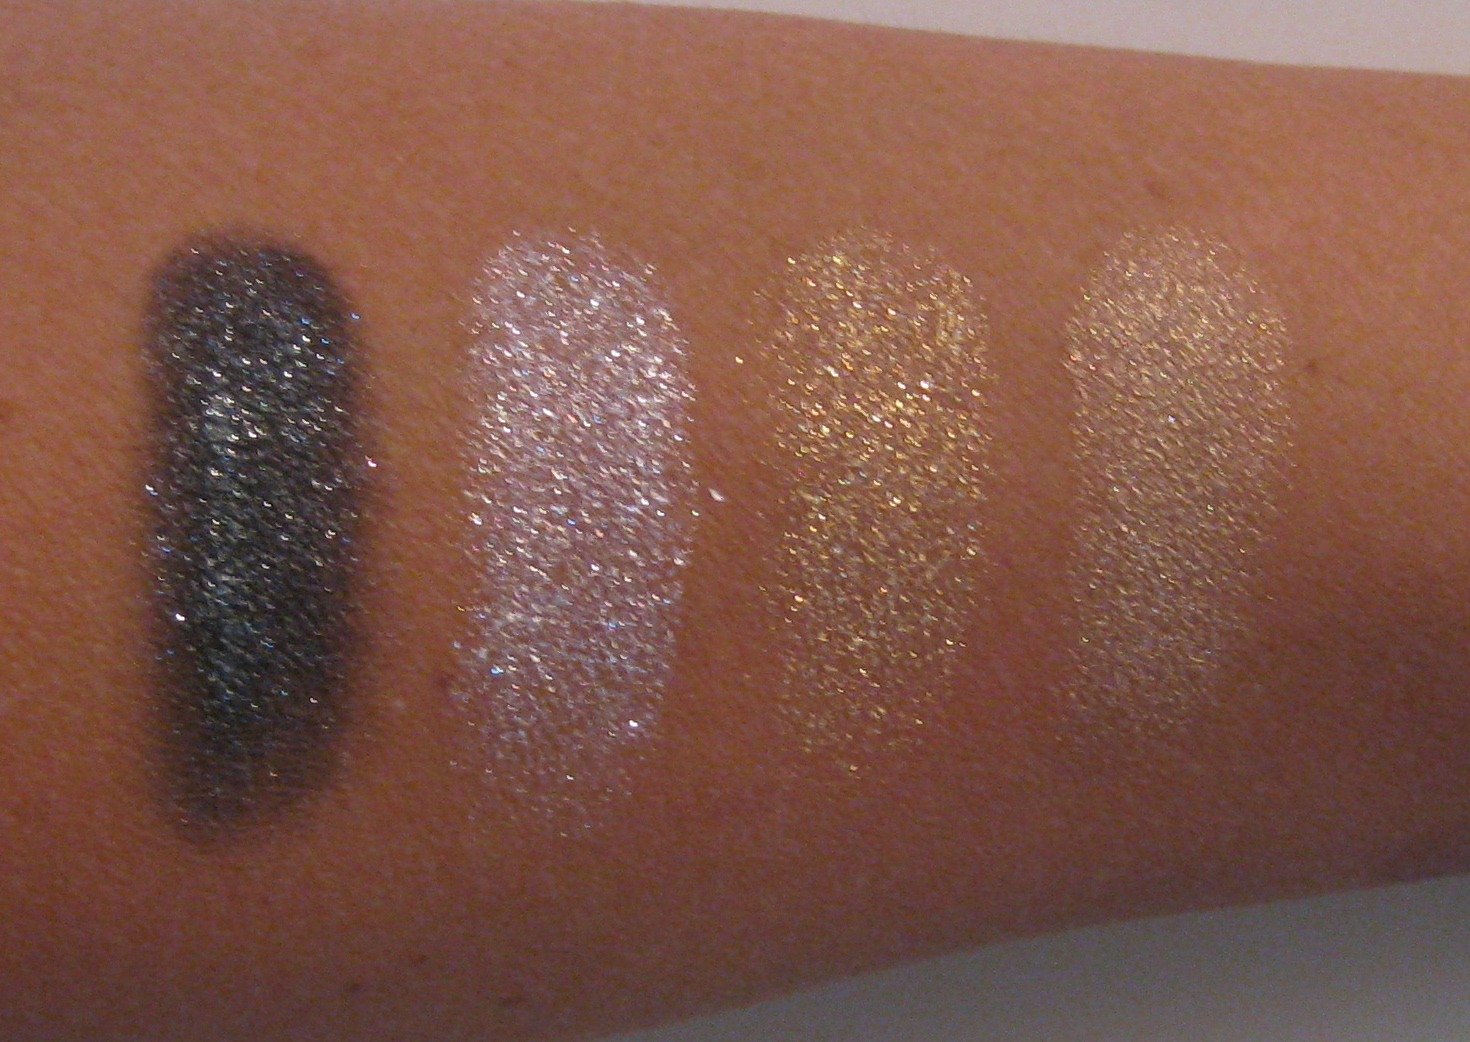 Illusion D'Ombre Long Wear Luminous Eyeshadow by Chanel #10